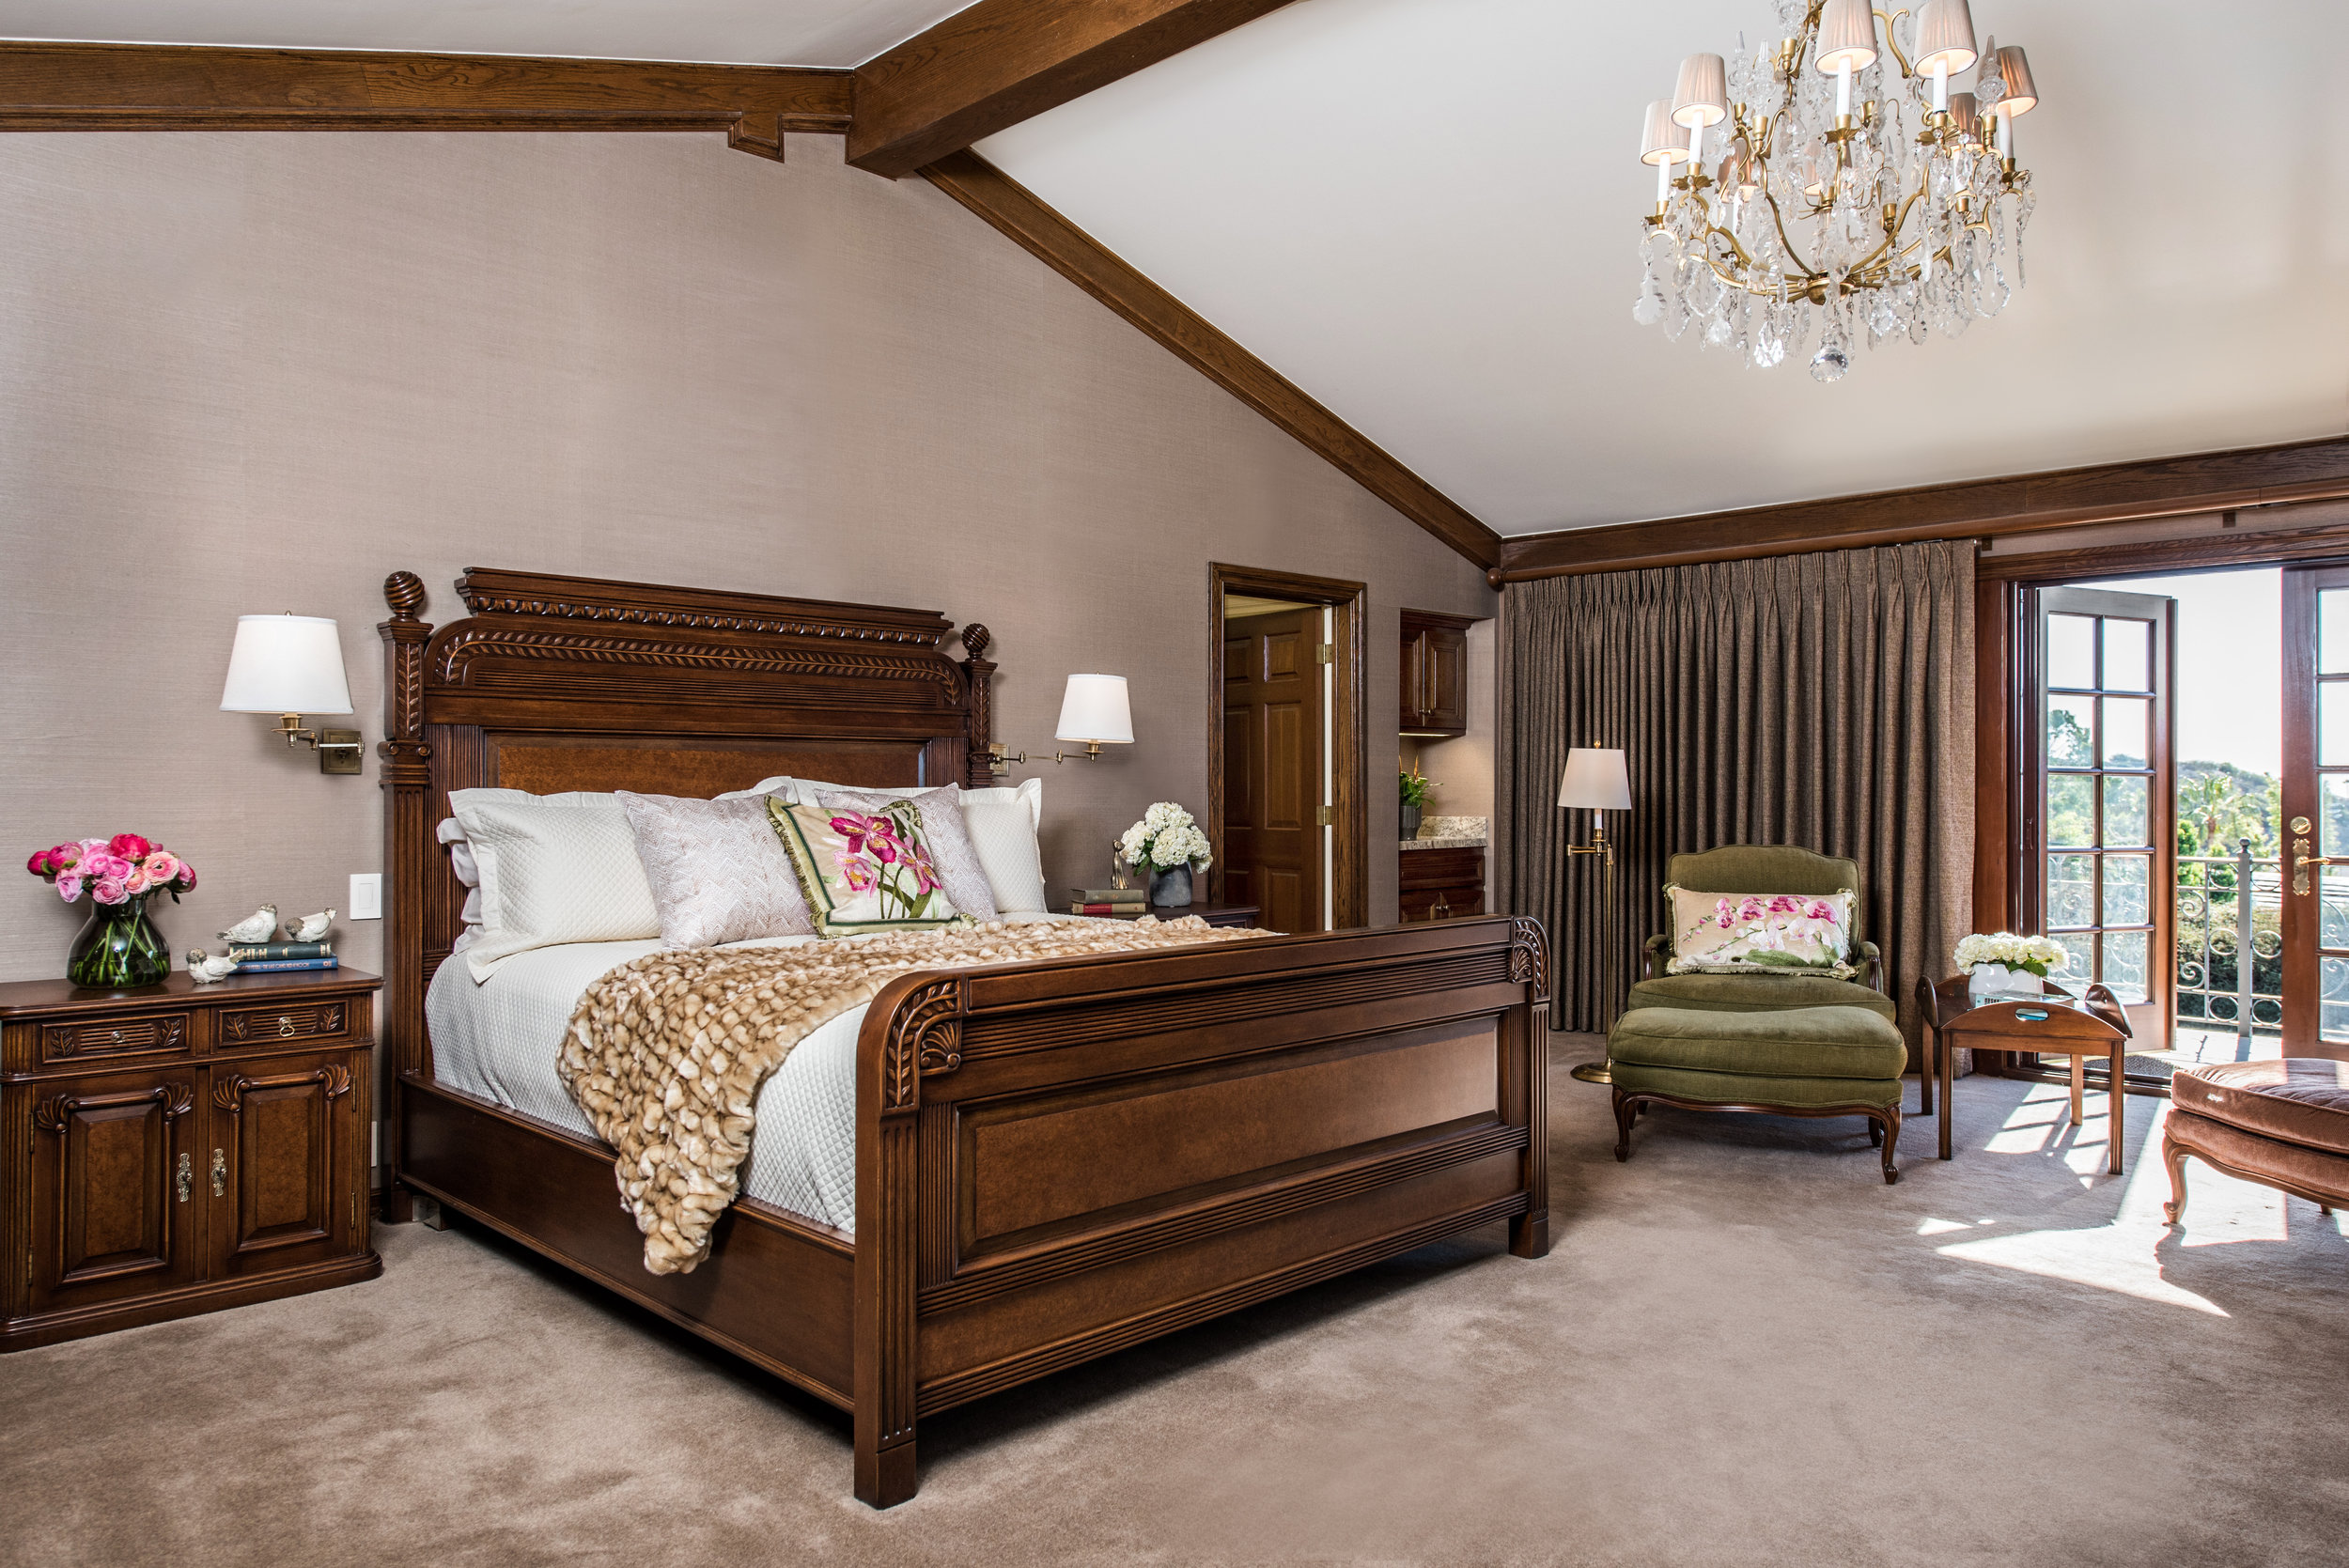 Sarah-barnard-design-traditiondal-palisades-master-bedroom.jpg